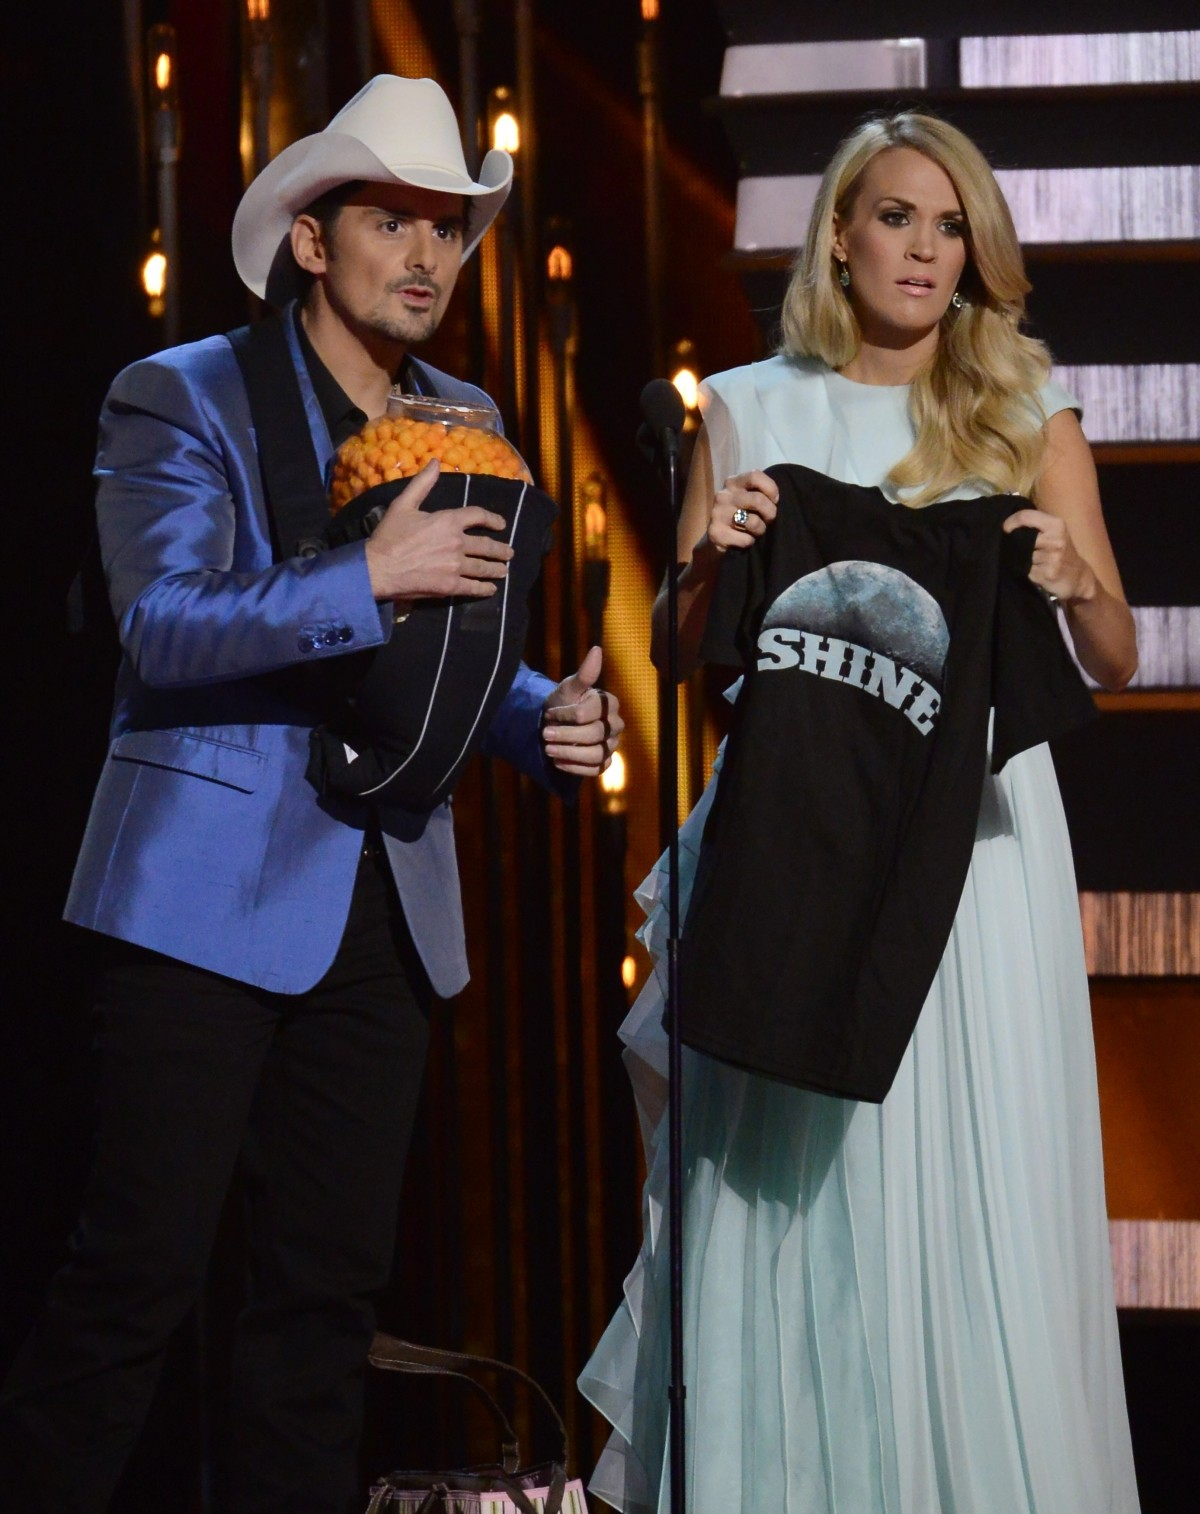 Brad Paisley and Carrie Underwood host the CMAs